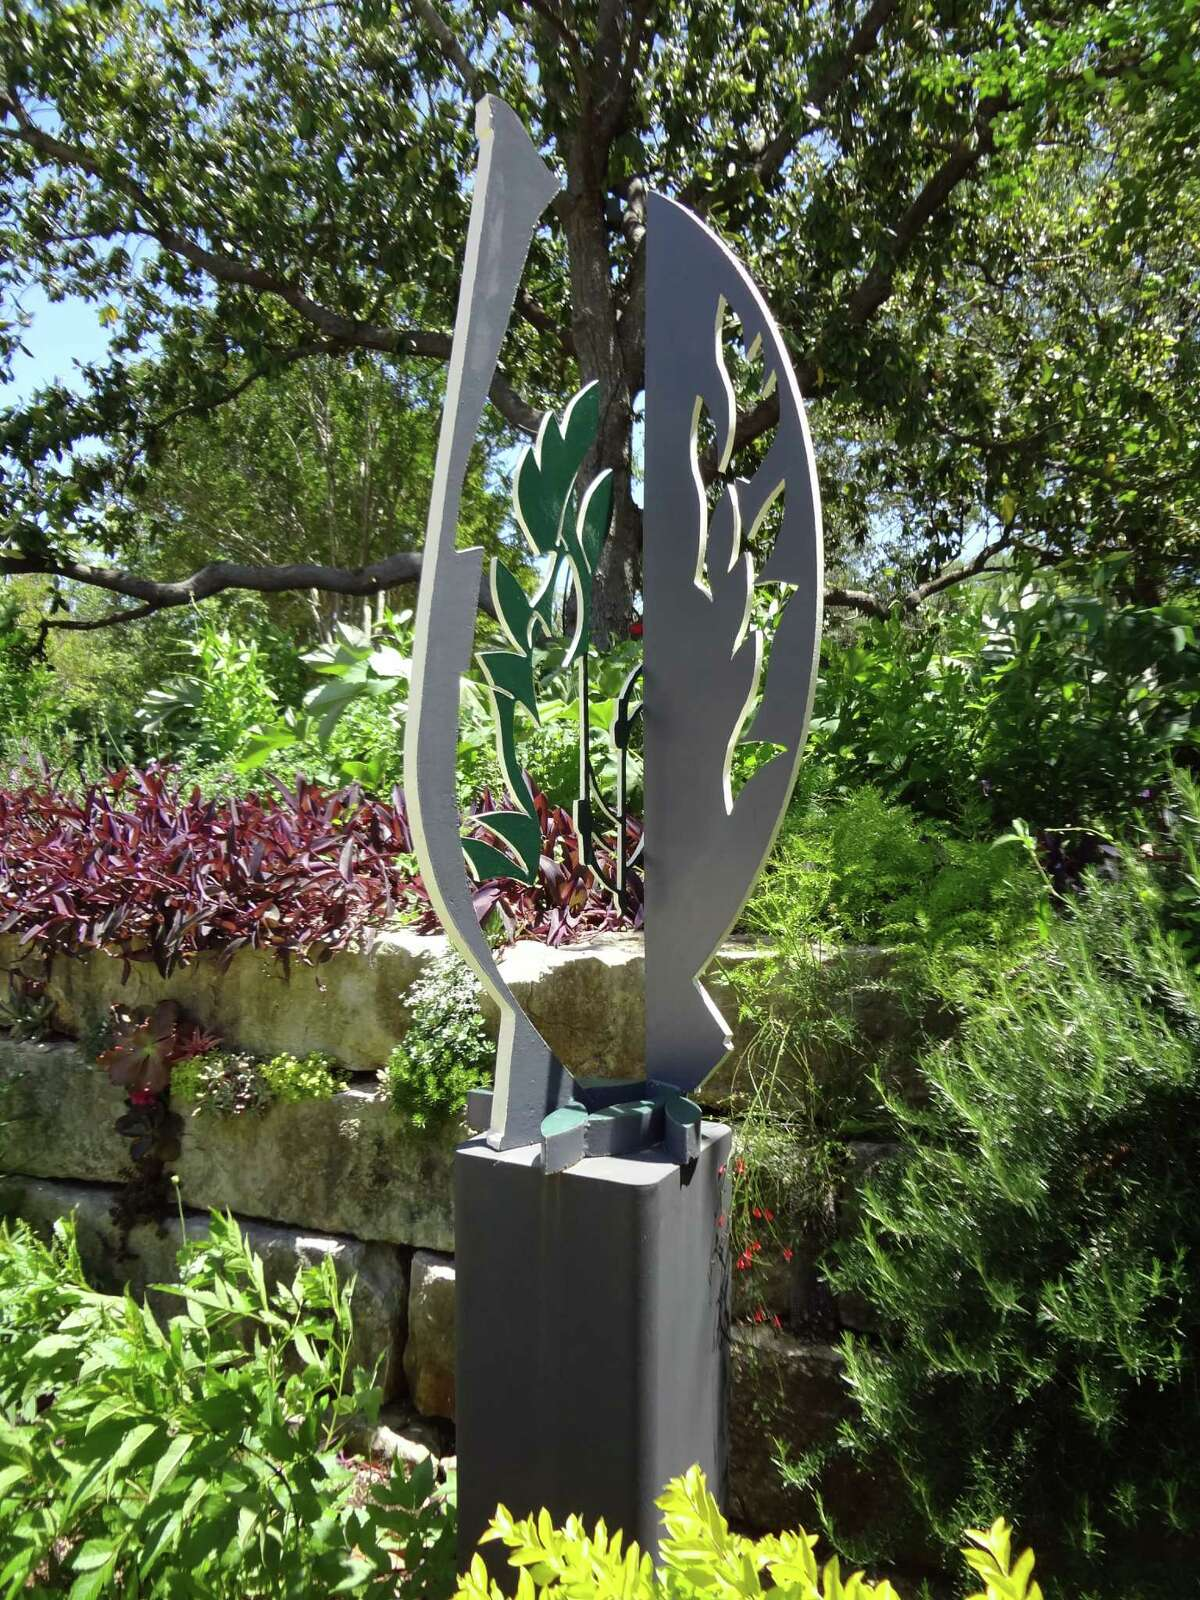 Welcome to Art in the Garden, the annual collaboration between the botanical garden and Blue Star Contemporary Art Museum that strategically situates contemporary sculpture within the native flora. Click through the gallery. Houston artist and San Antonio native Ben Woitena's metal sculpture